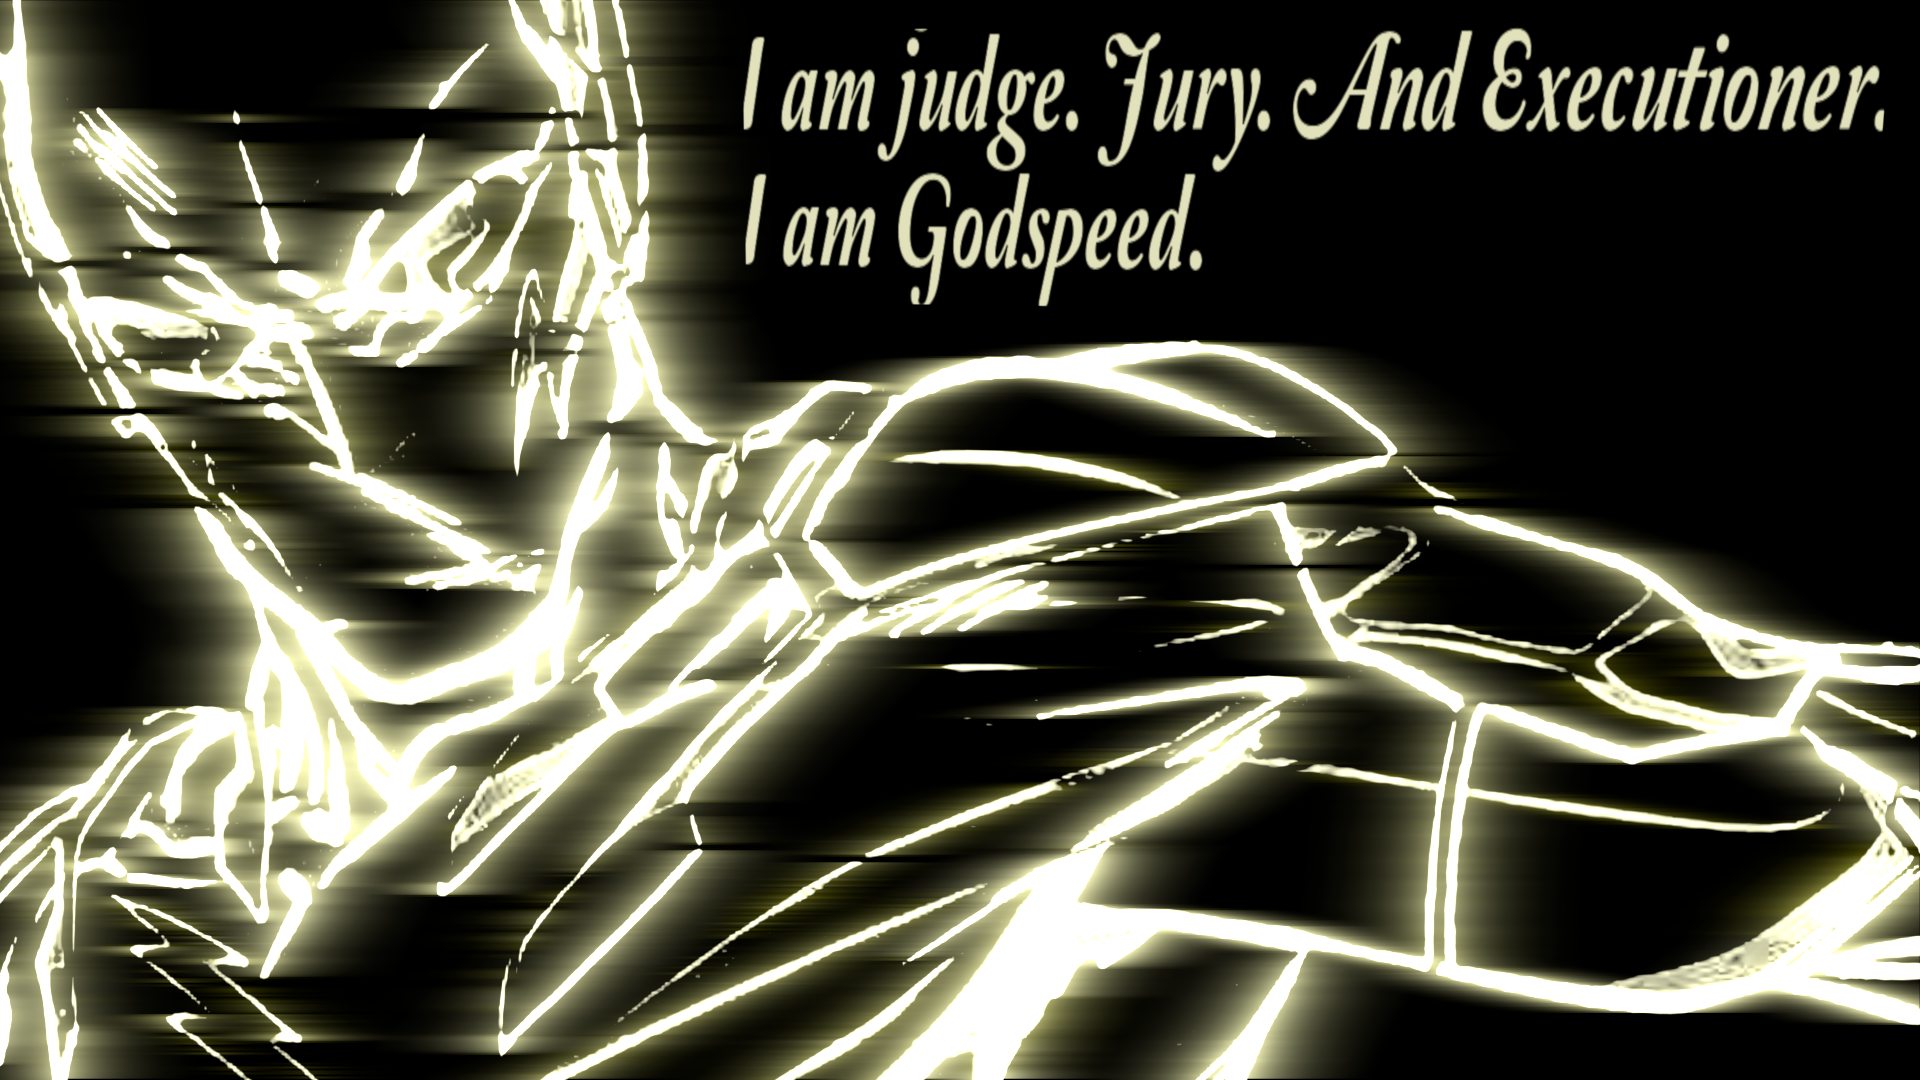 I am Judge Jury And Executioner Some Godspeed wallpaper made in 1920x1080